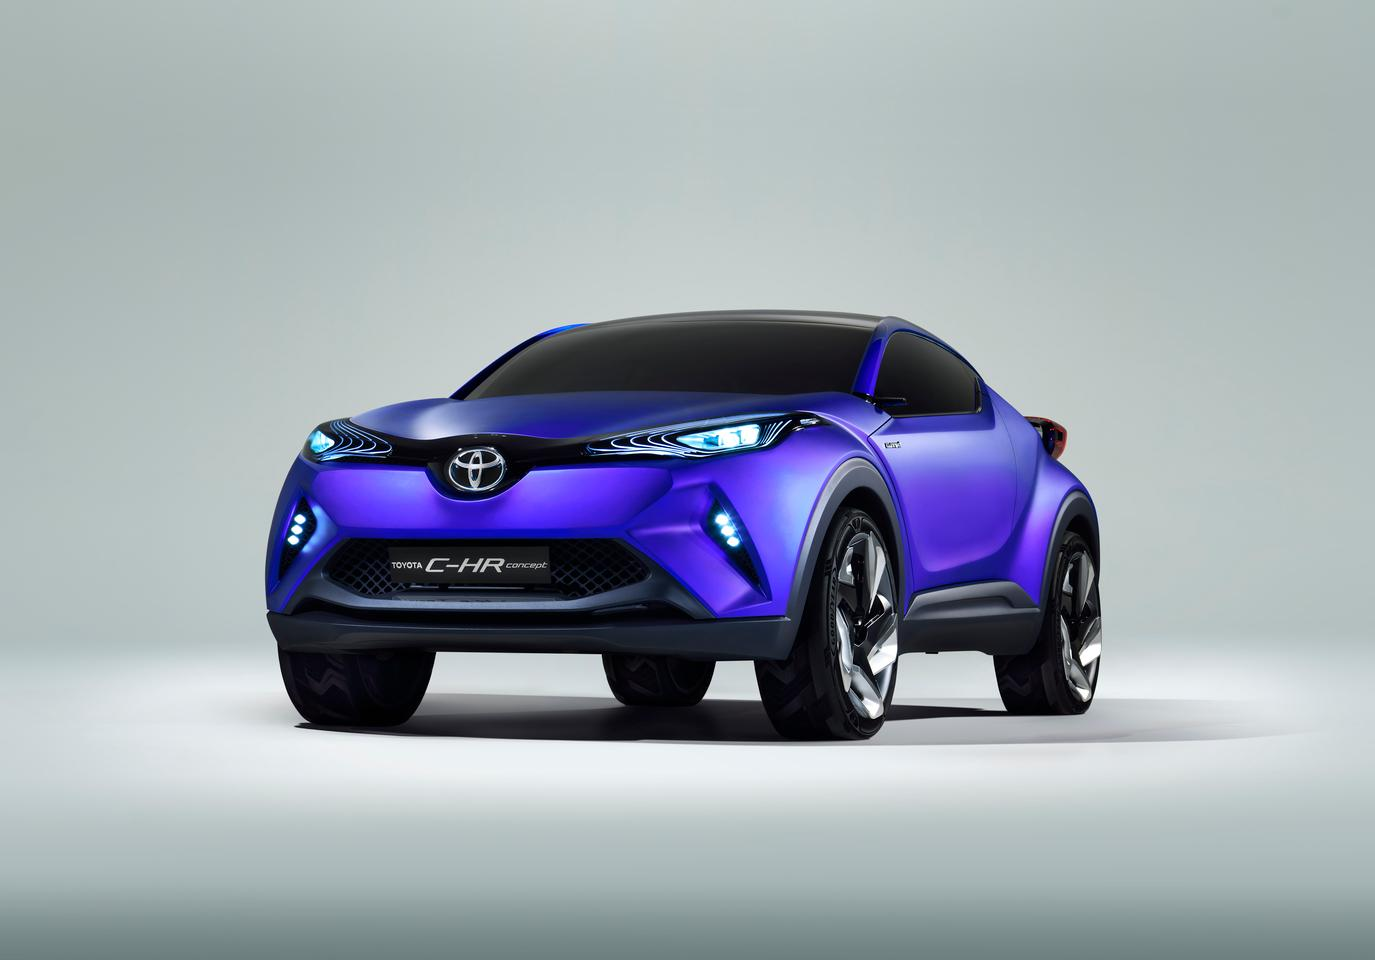 """Toyota says the C-HR's frontal treatment marks the """"introduction of themes which signal a future direction for Toyota vehicles"""""""